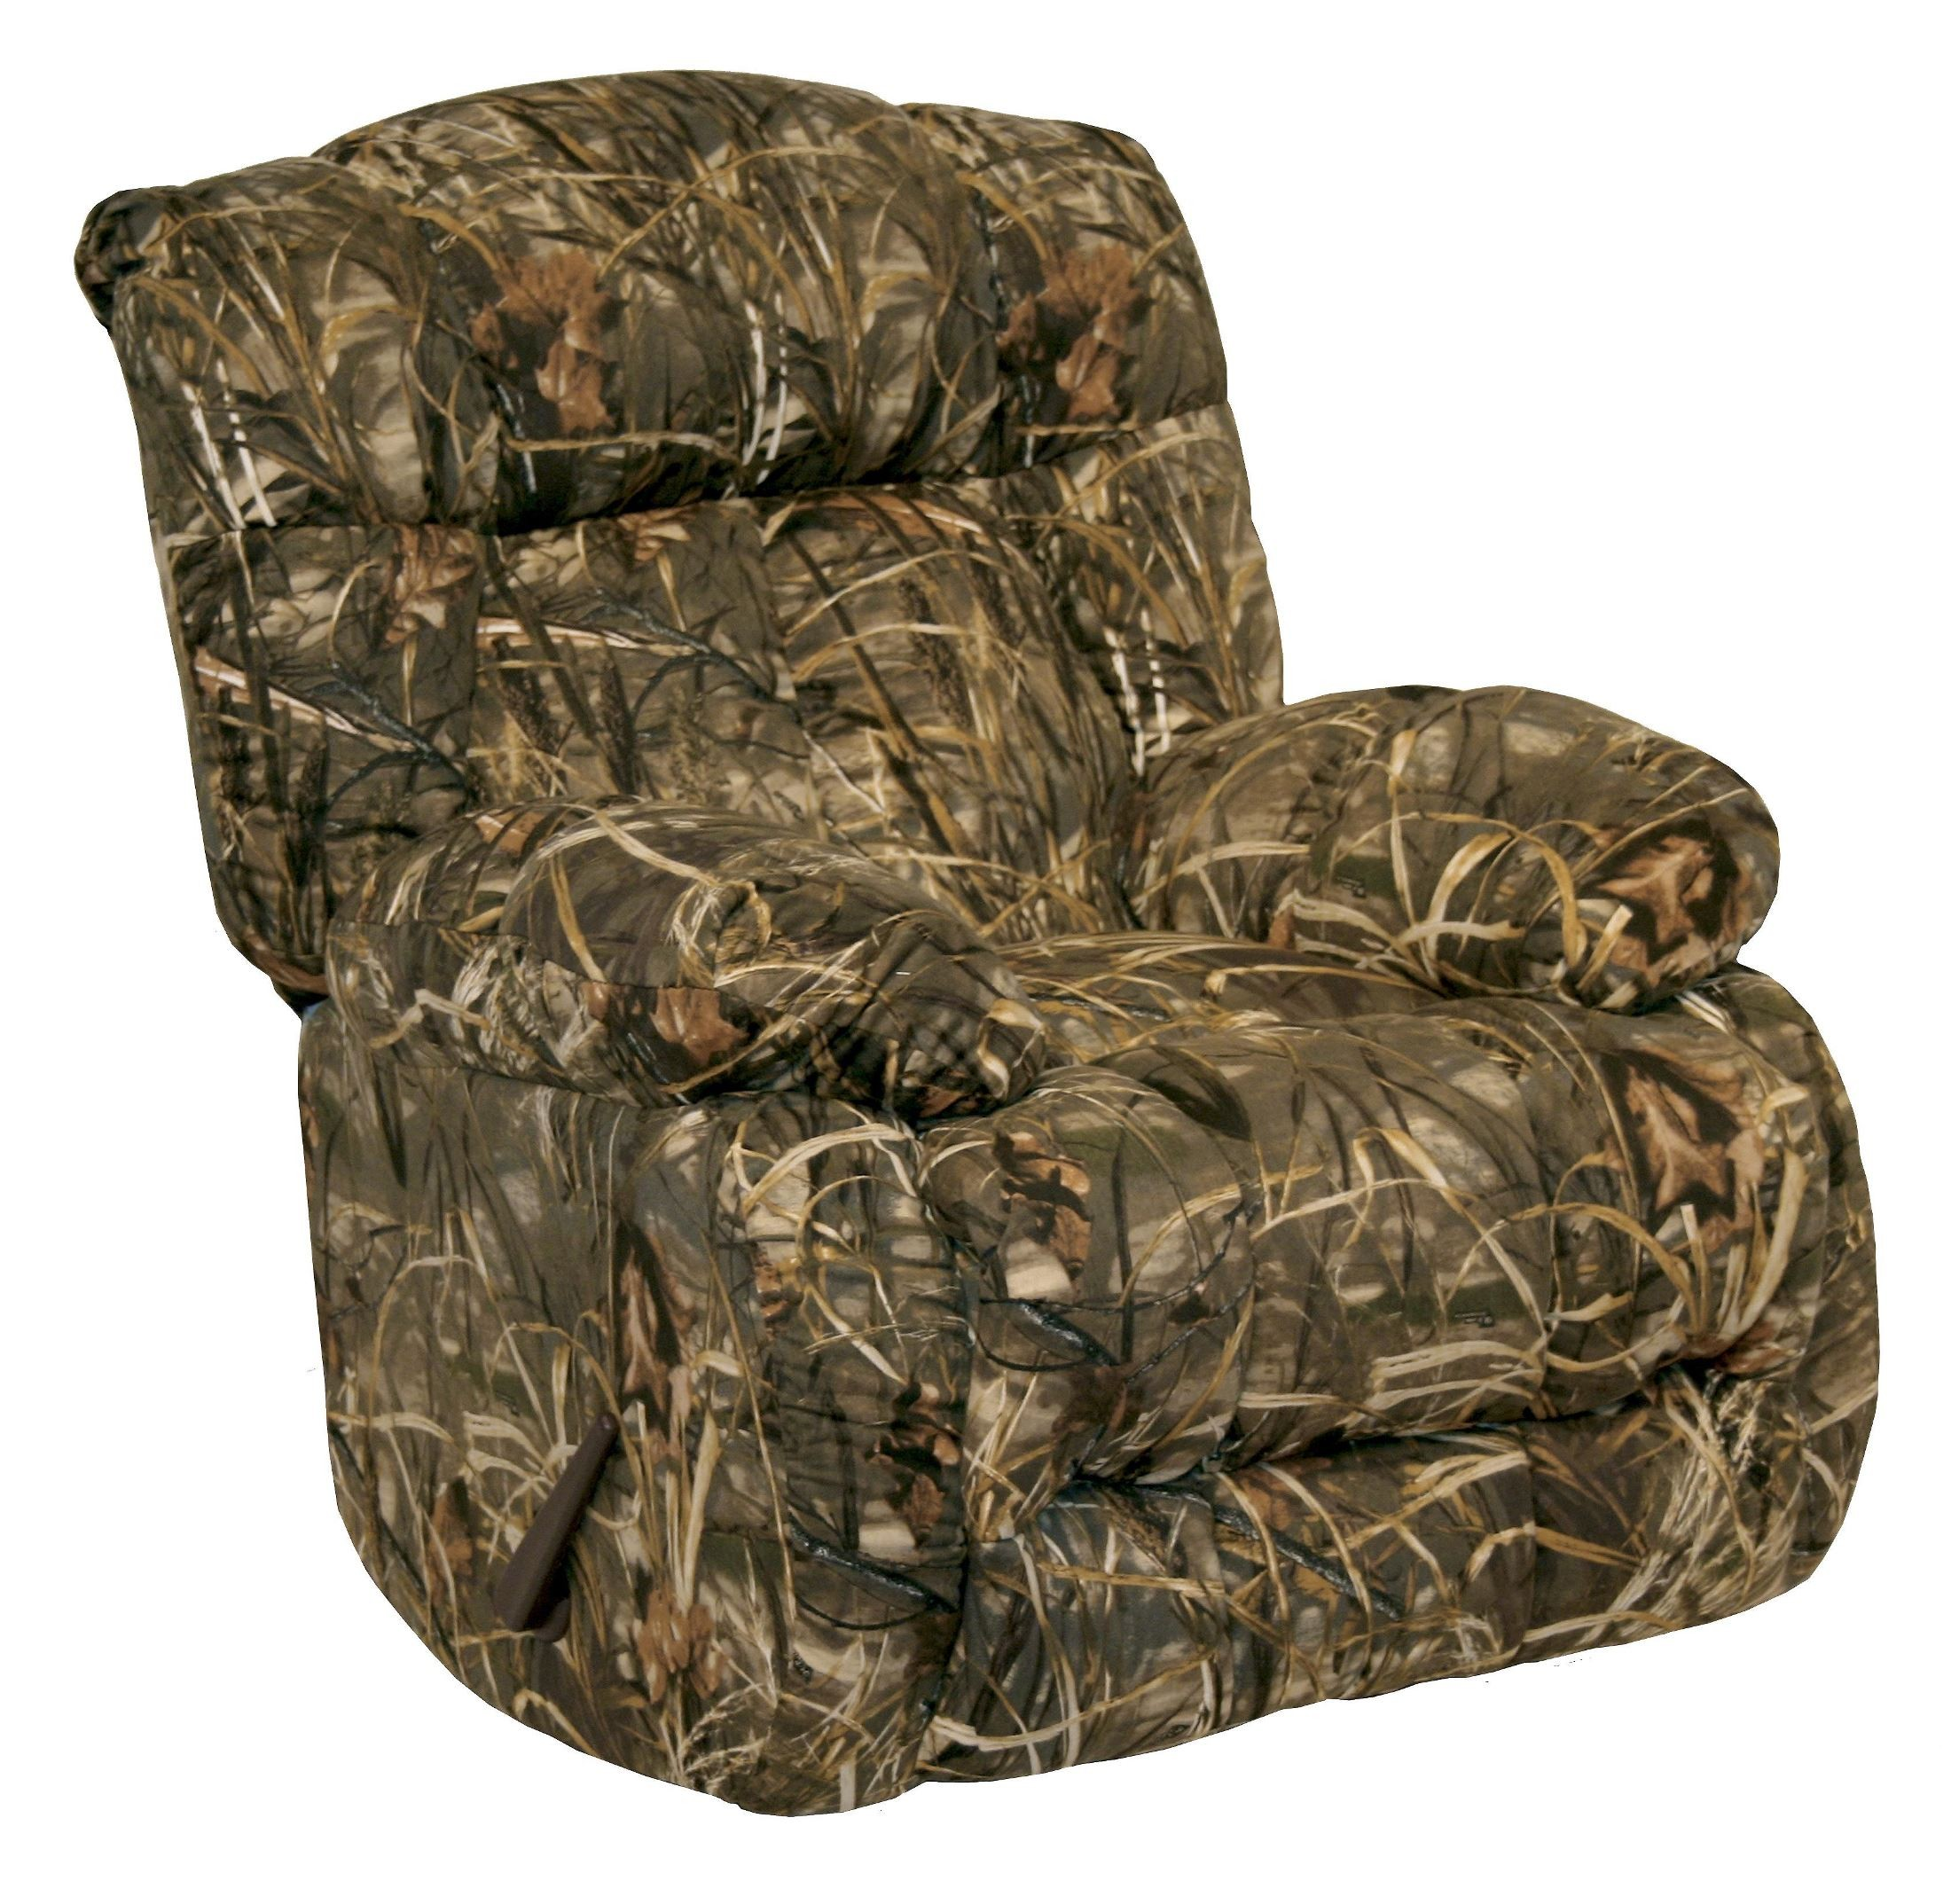 Camo Recliner Chair Laredo Max 4 Camo Rocker Recliner From Catnapper